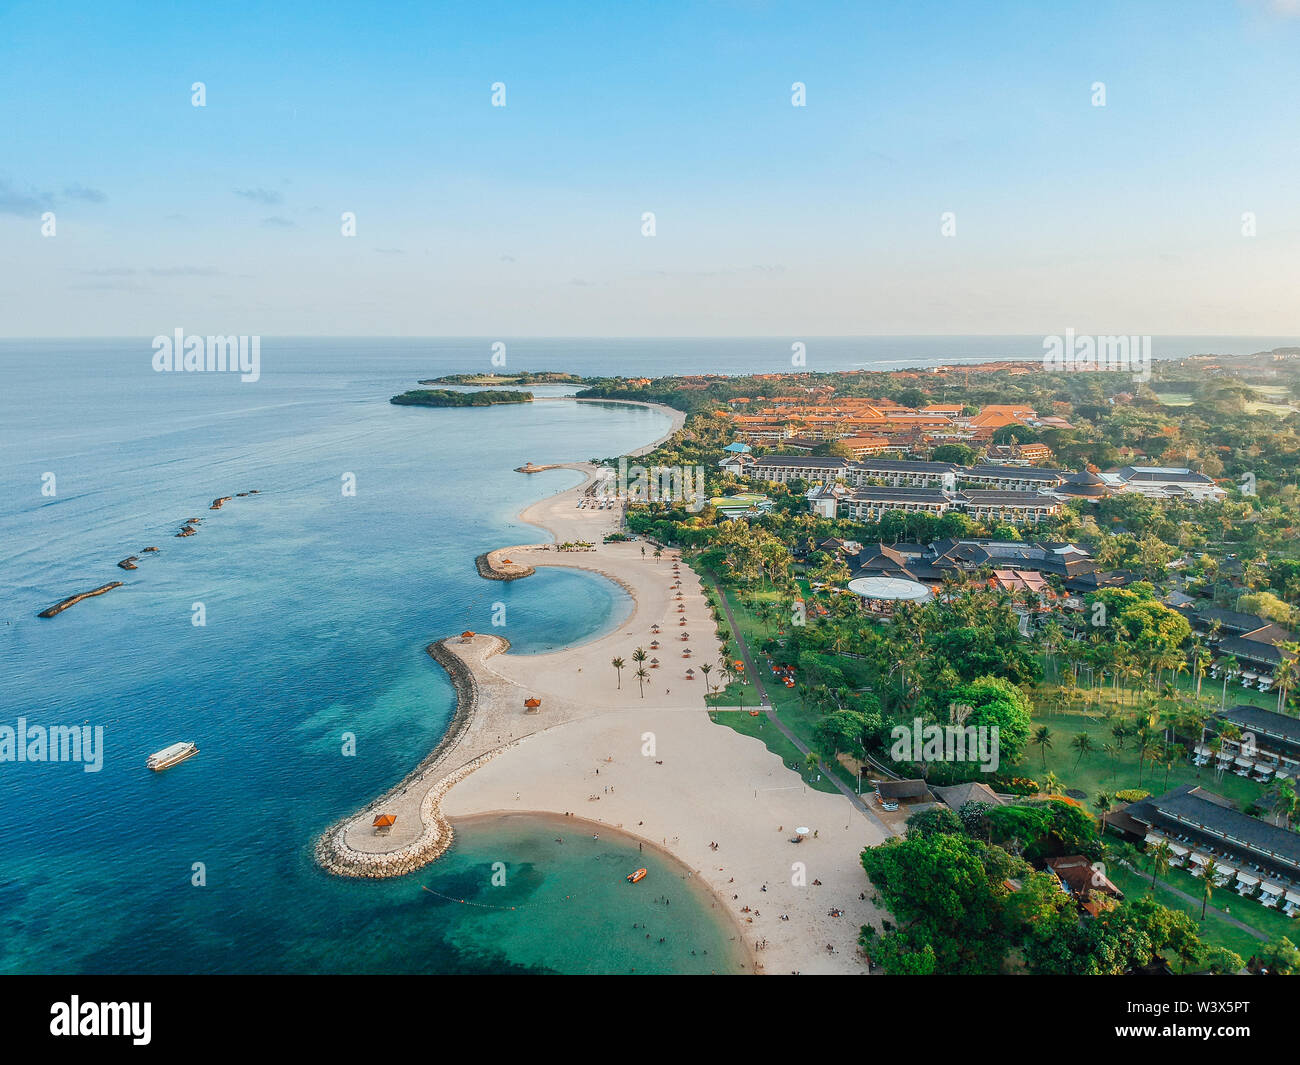 Aerial Drone View Of Holiday In Sanur Beach Bali Indonesia With Ocean Boats Beach Villas And People Stock Photo Alamy